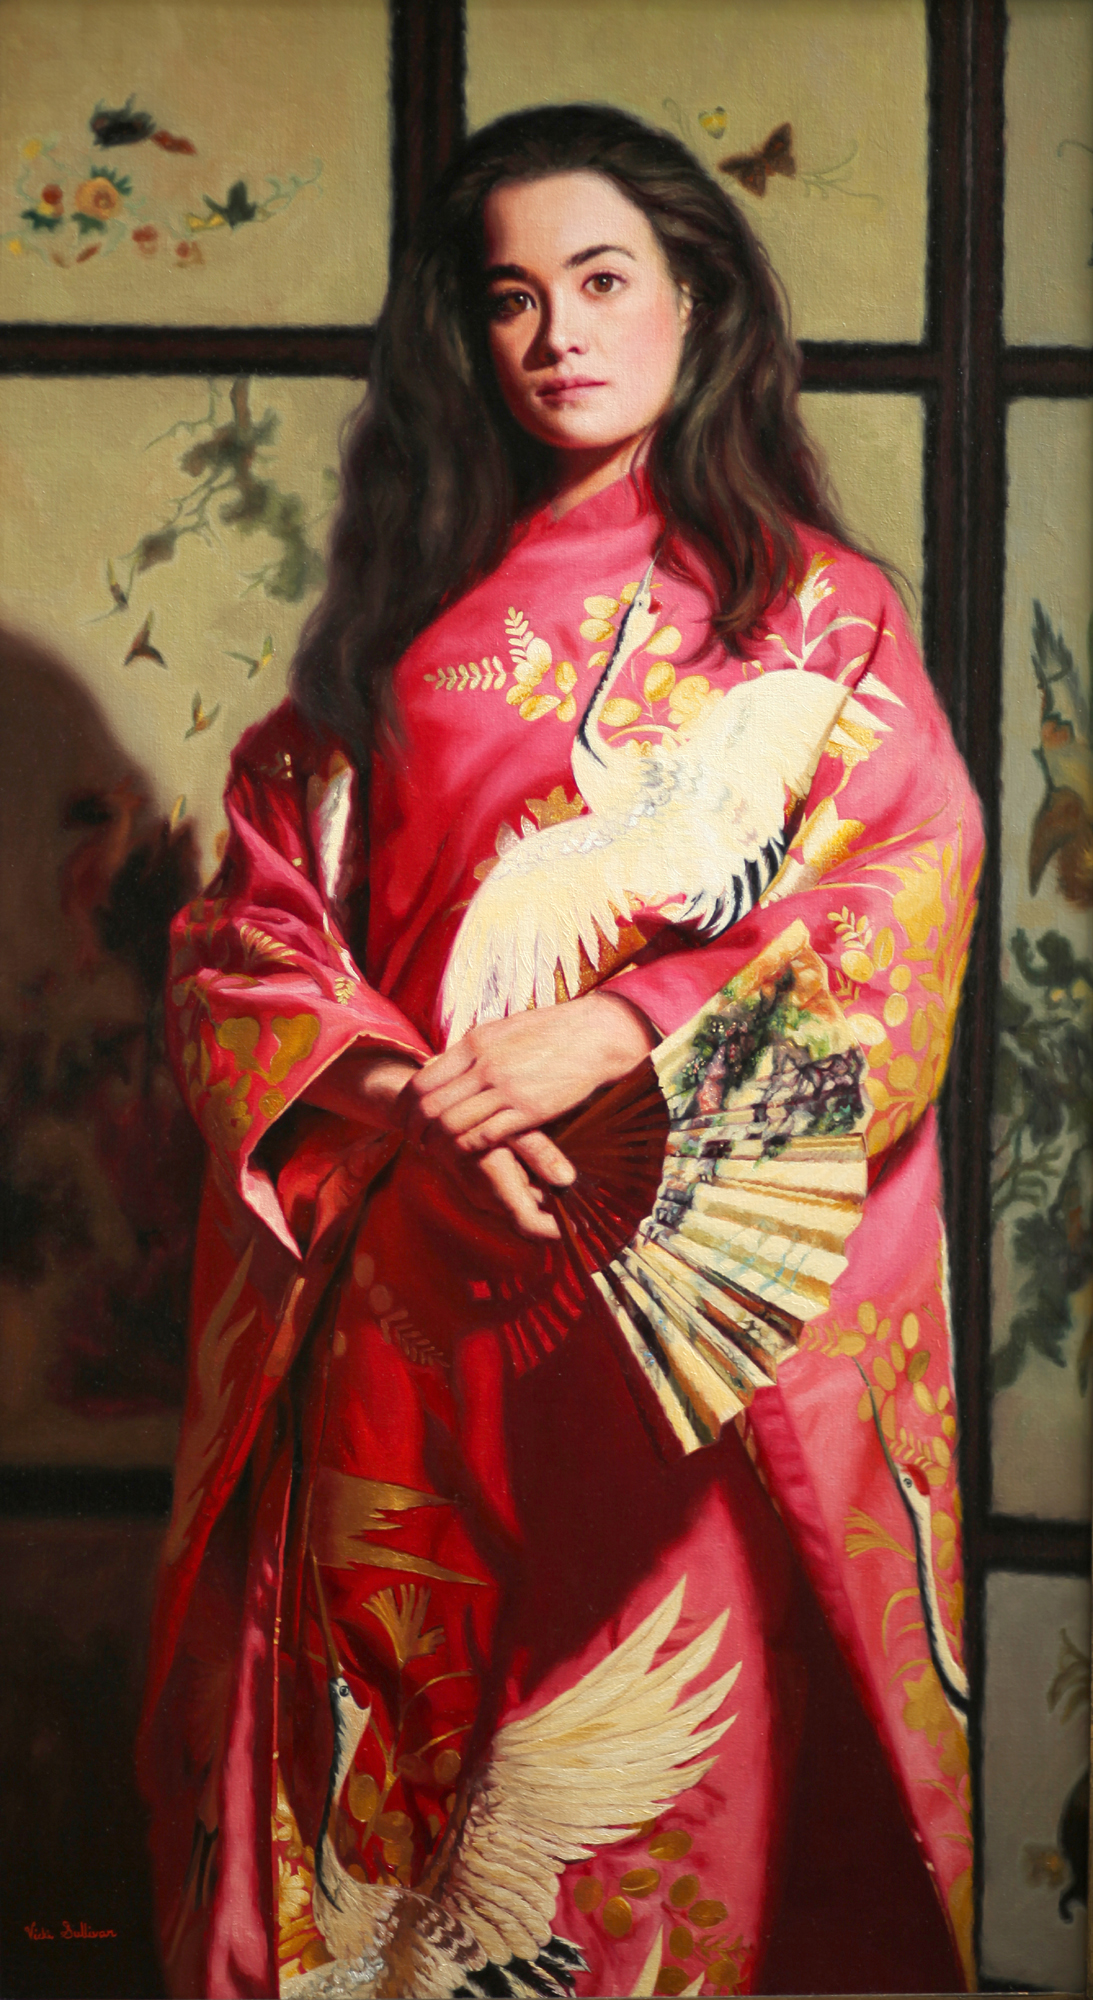 Title:Kimono with white Cranes, Medium:oil on linen, Size: h 120cm x w 66cm, available